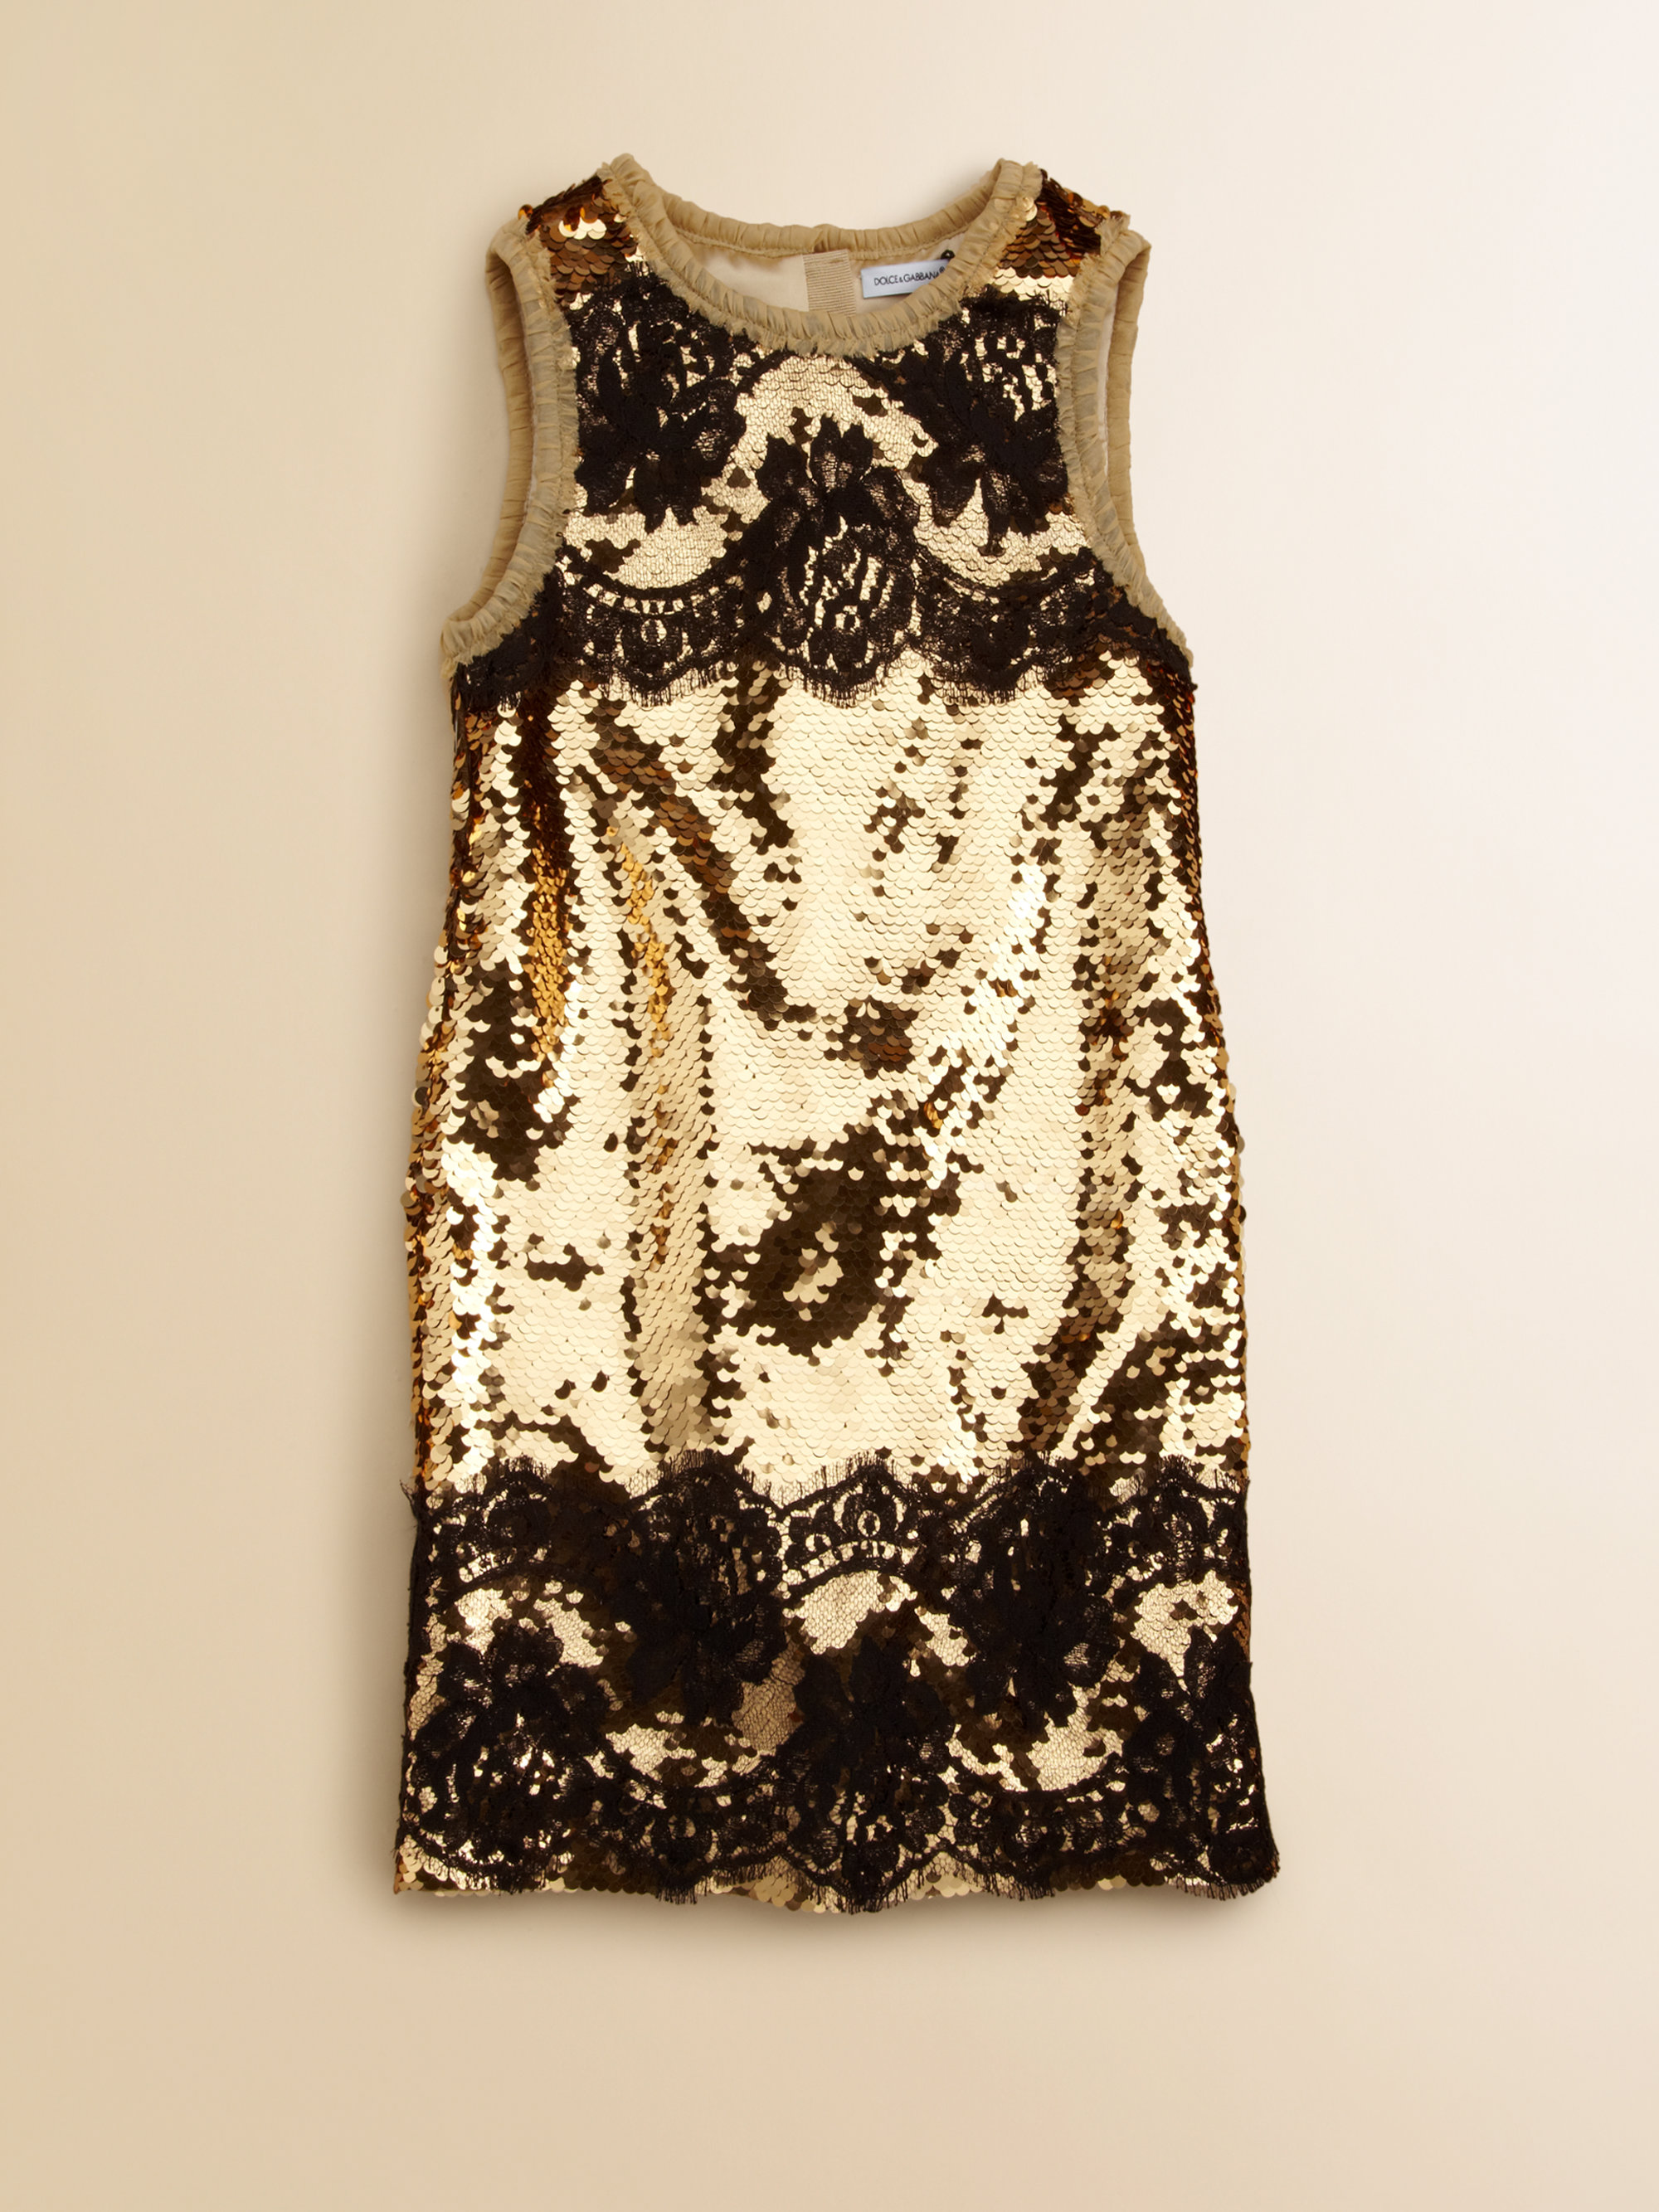 Dolce & gabbana Girls Sequin Dress in Metallic | Lyst